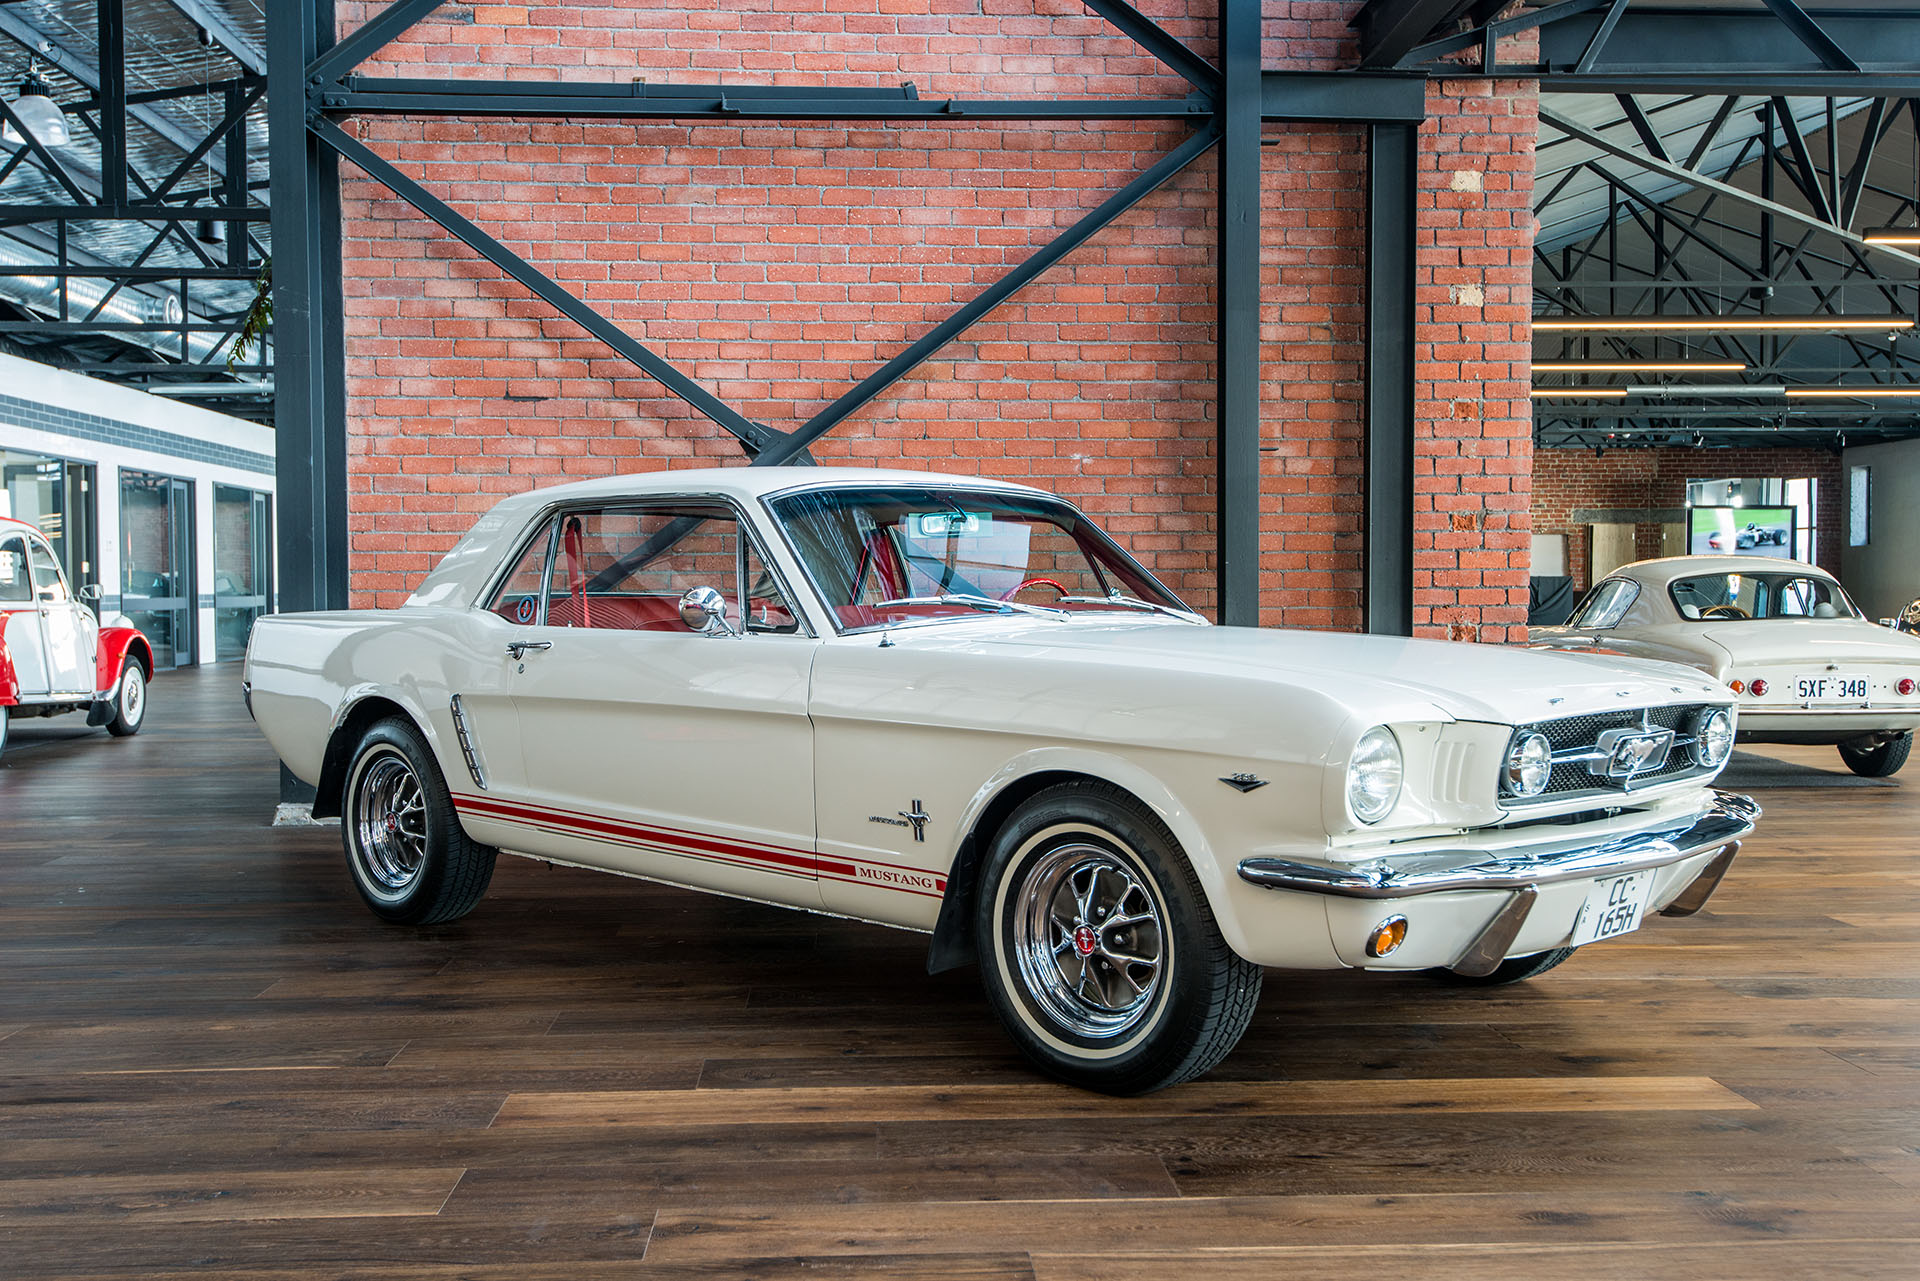 65 Mustang For Sale >> 1965 Ford Mustang - Richmonds - Classic and Prestige Cars - Storage and Sales - Adelaide, Australia